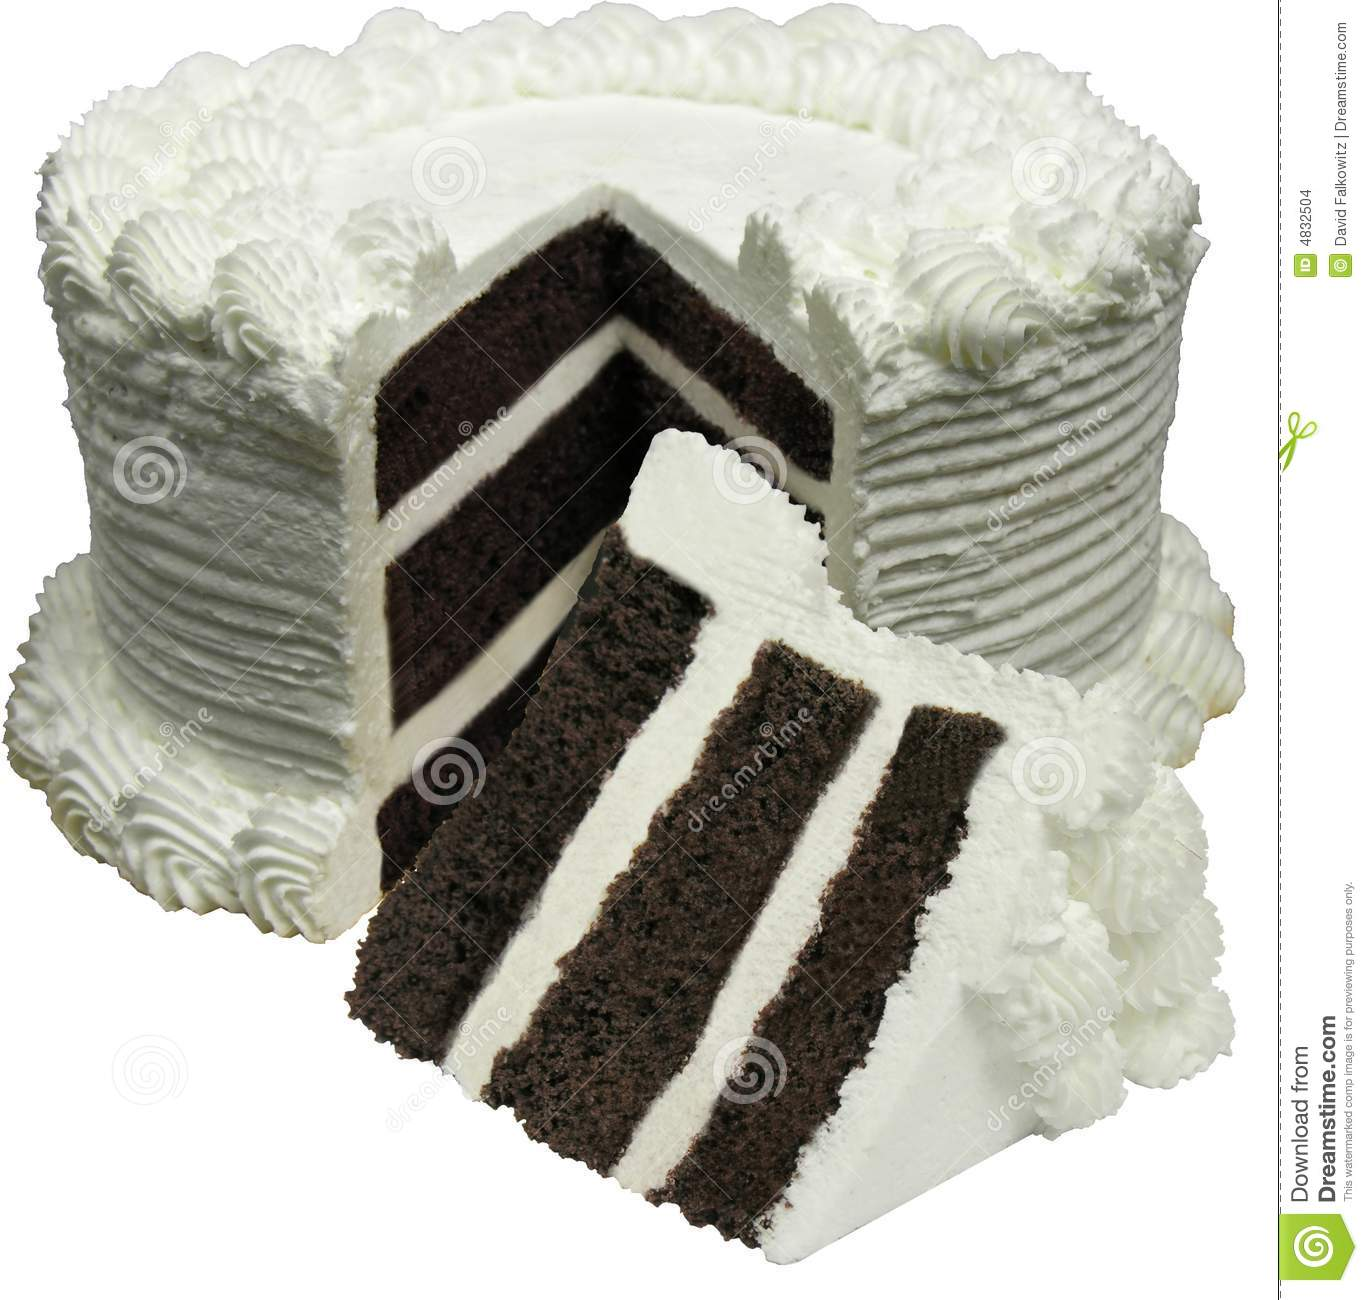 Round Chocolate Cake Stock Images - Image: 4832504